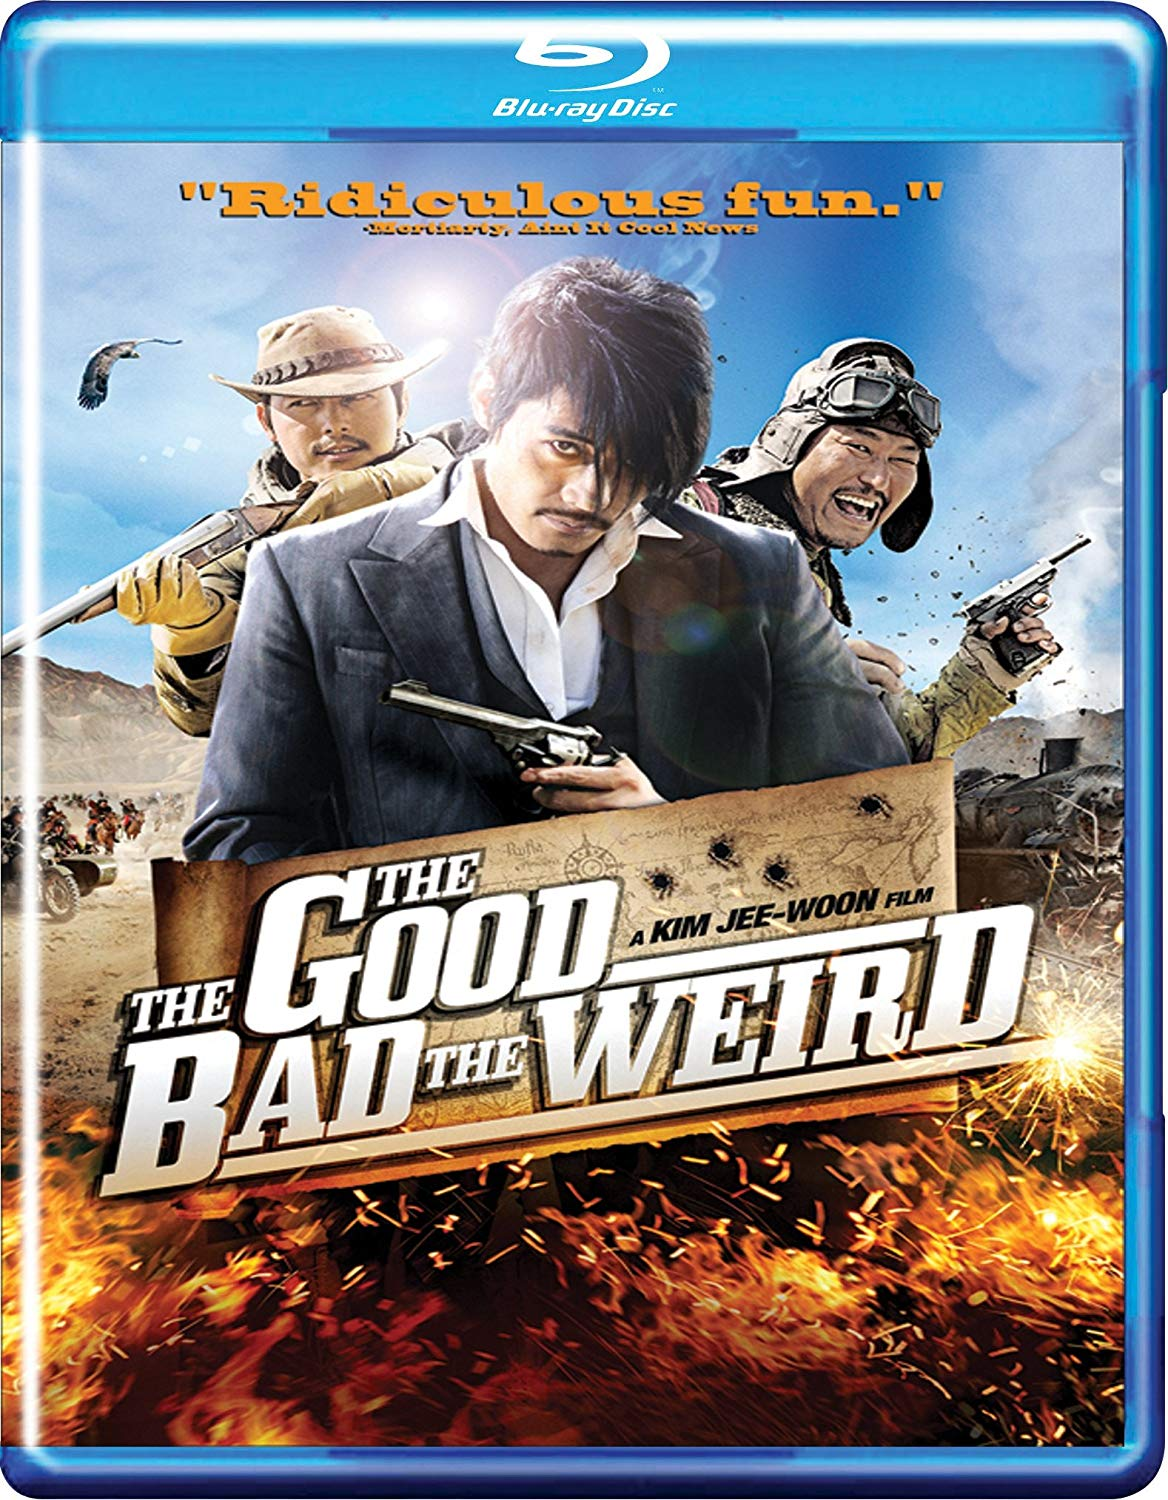 Opinie despre The Good, the Bad, the Weird (2008)